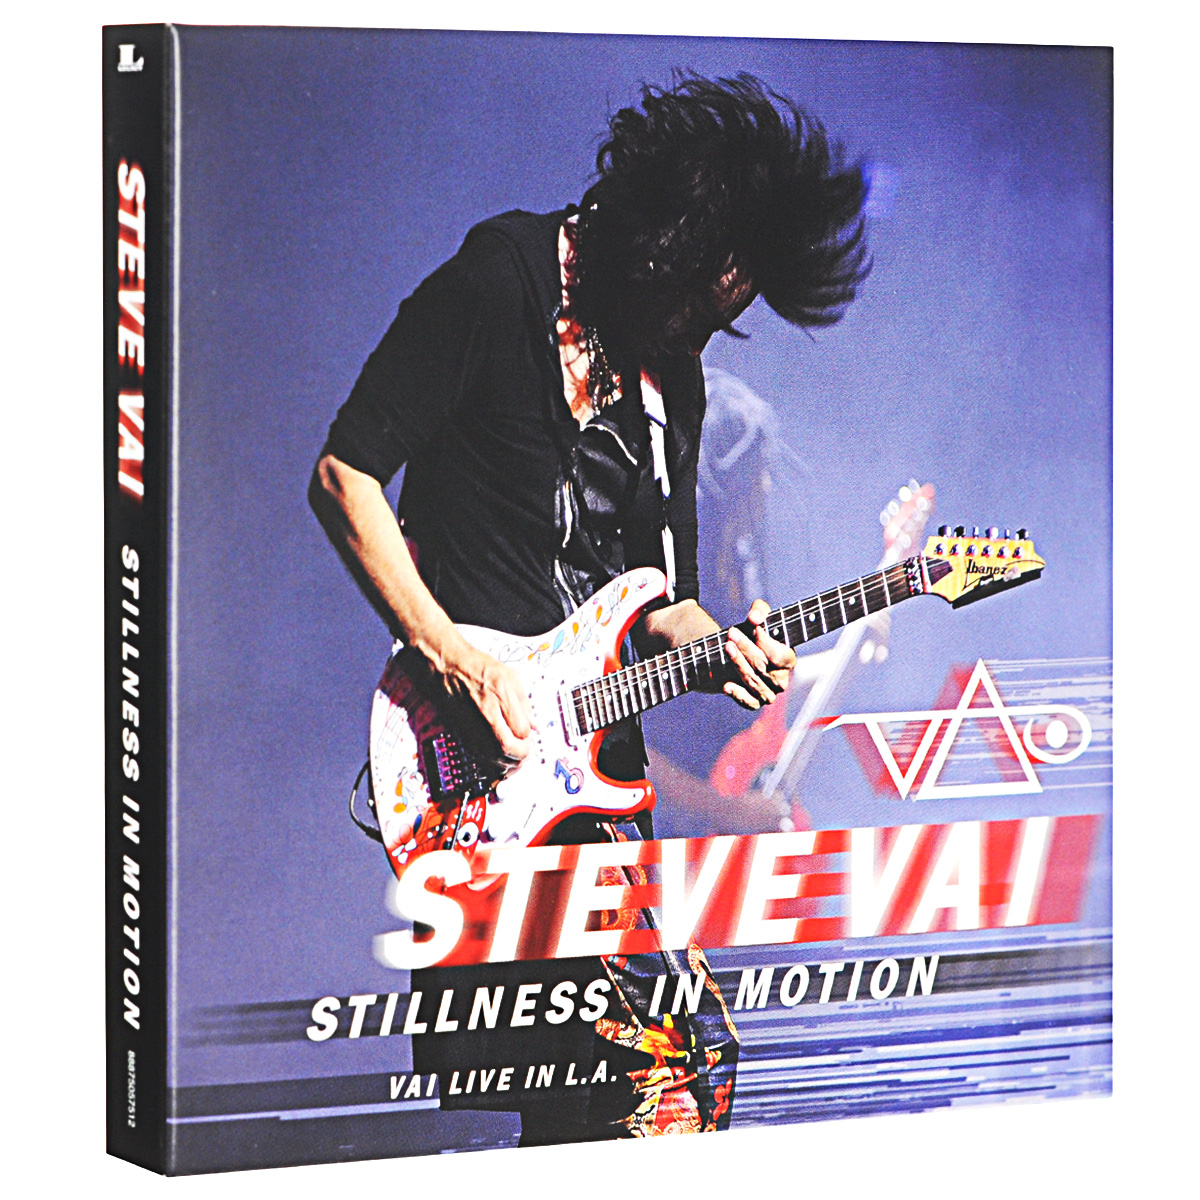 Фото - Стив Вай Steve Vai. Stillness In Motion. Vai Live In L. A. (2 CD) сувениры народности вай dragon and phoenix hp0010